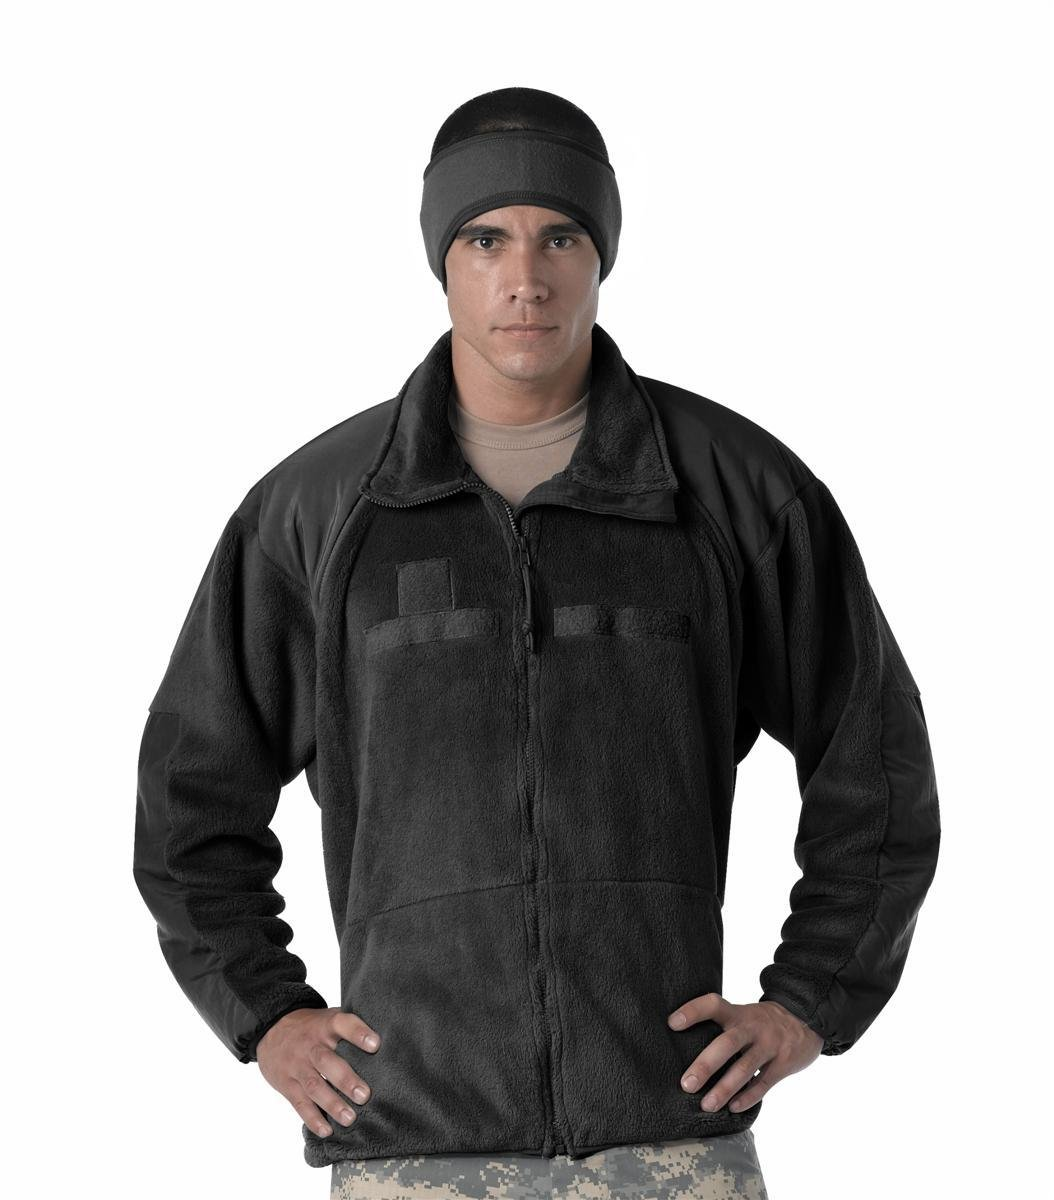 Rothco Men's Generation III Military ECWCS Jacket Liner - 2X-Large, Black RSR Group Inc 613902974005